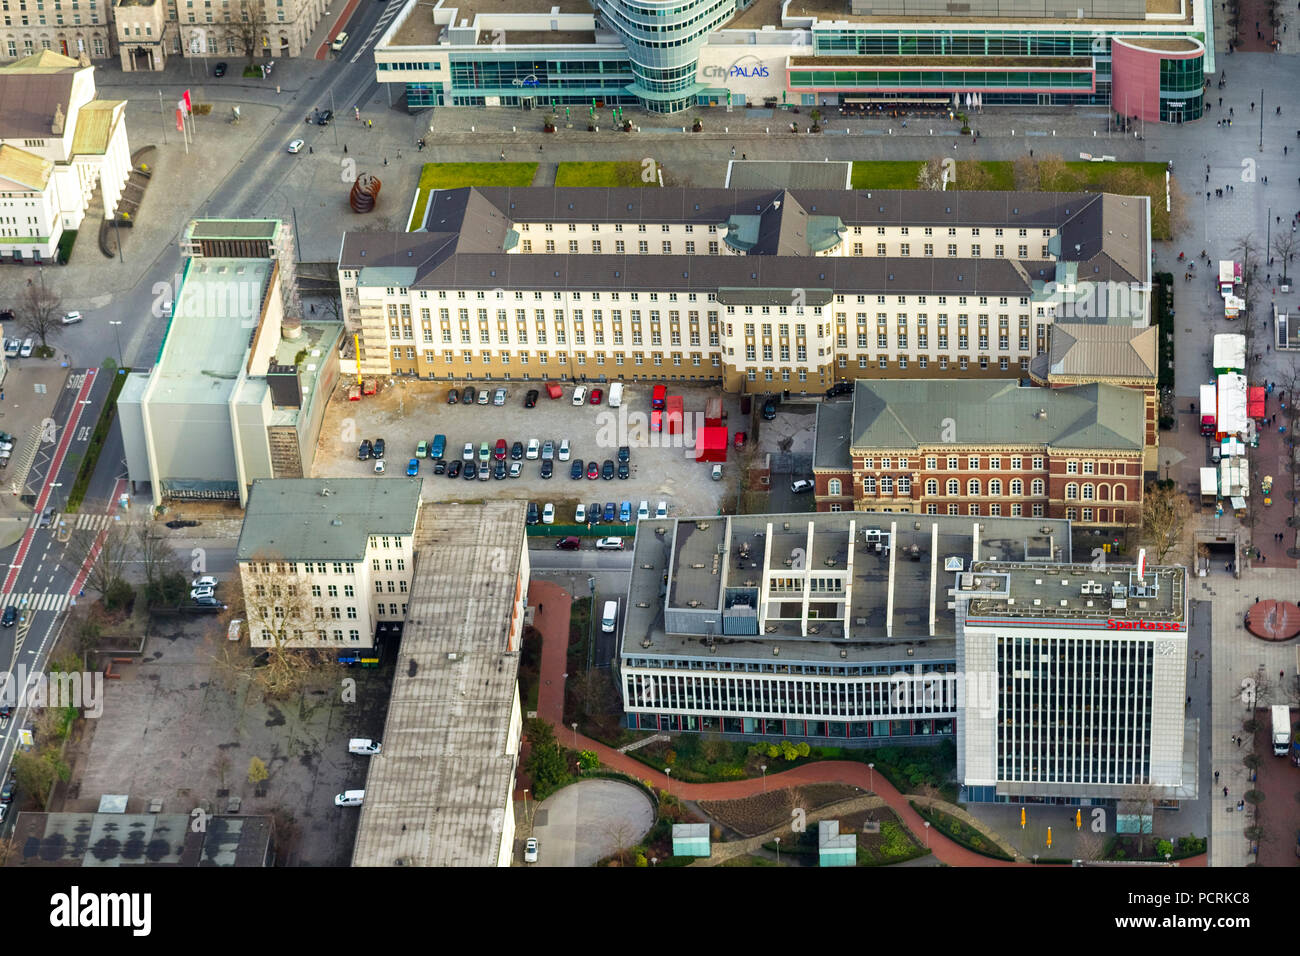 Regional and district court building, Duisburg, Ruhr area, aerial view - Stock Image